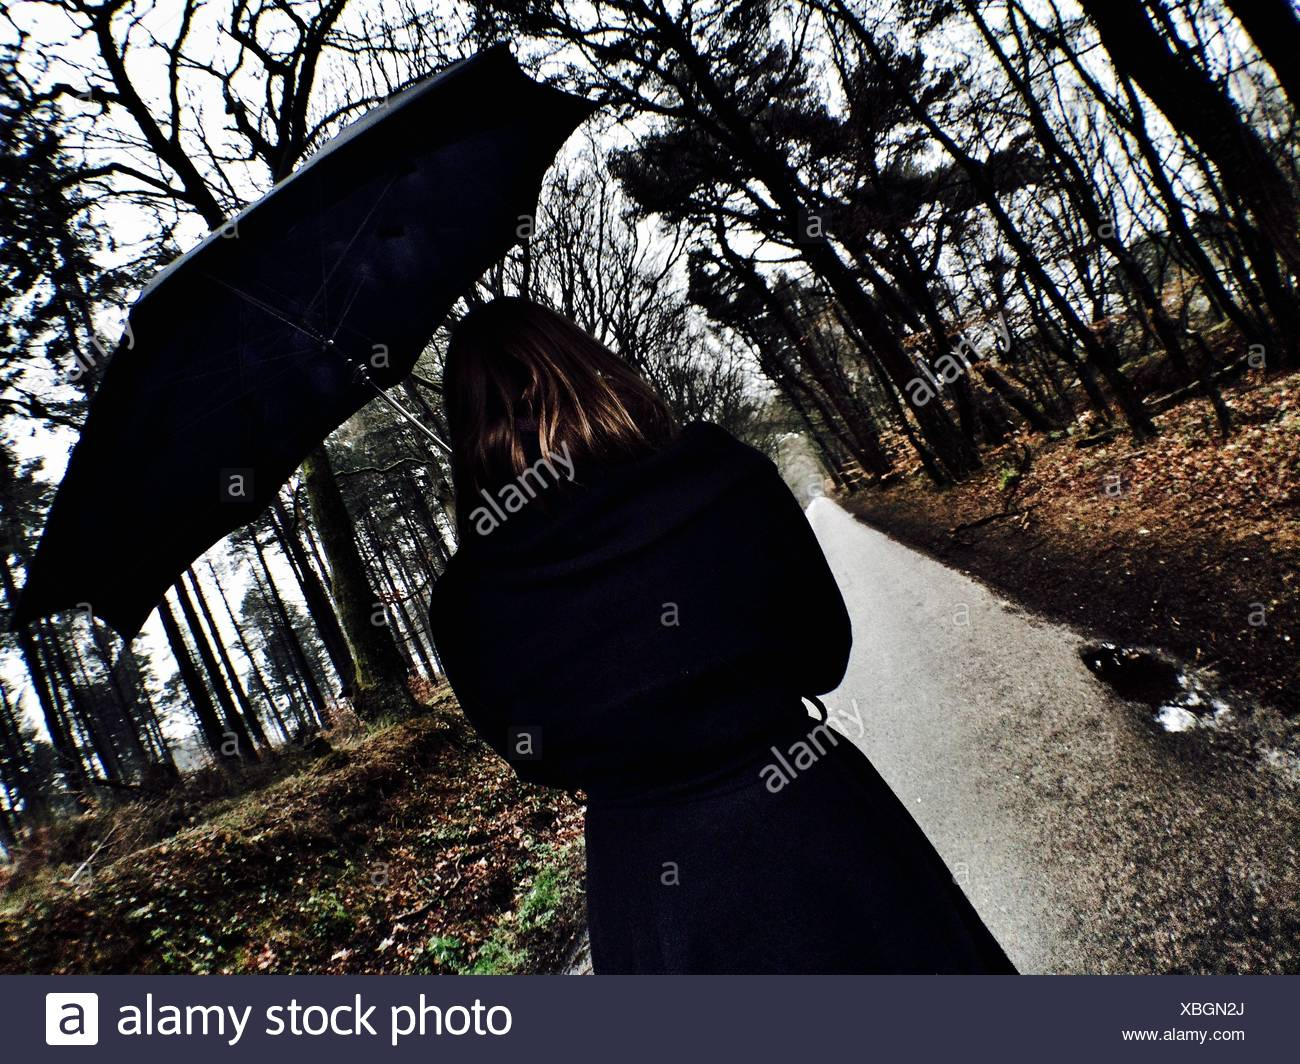 Rear View of Woman Holding Umbrella Walking on Pathway au milieu d'arbres Photo Stock